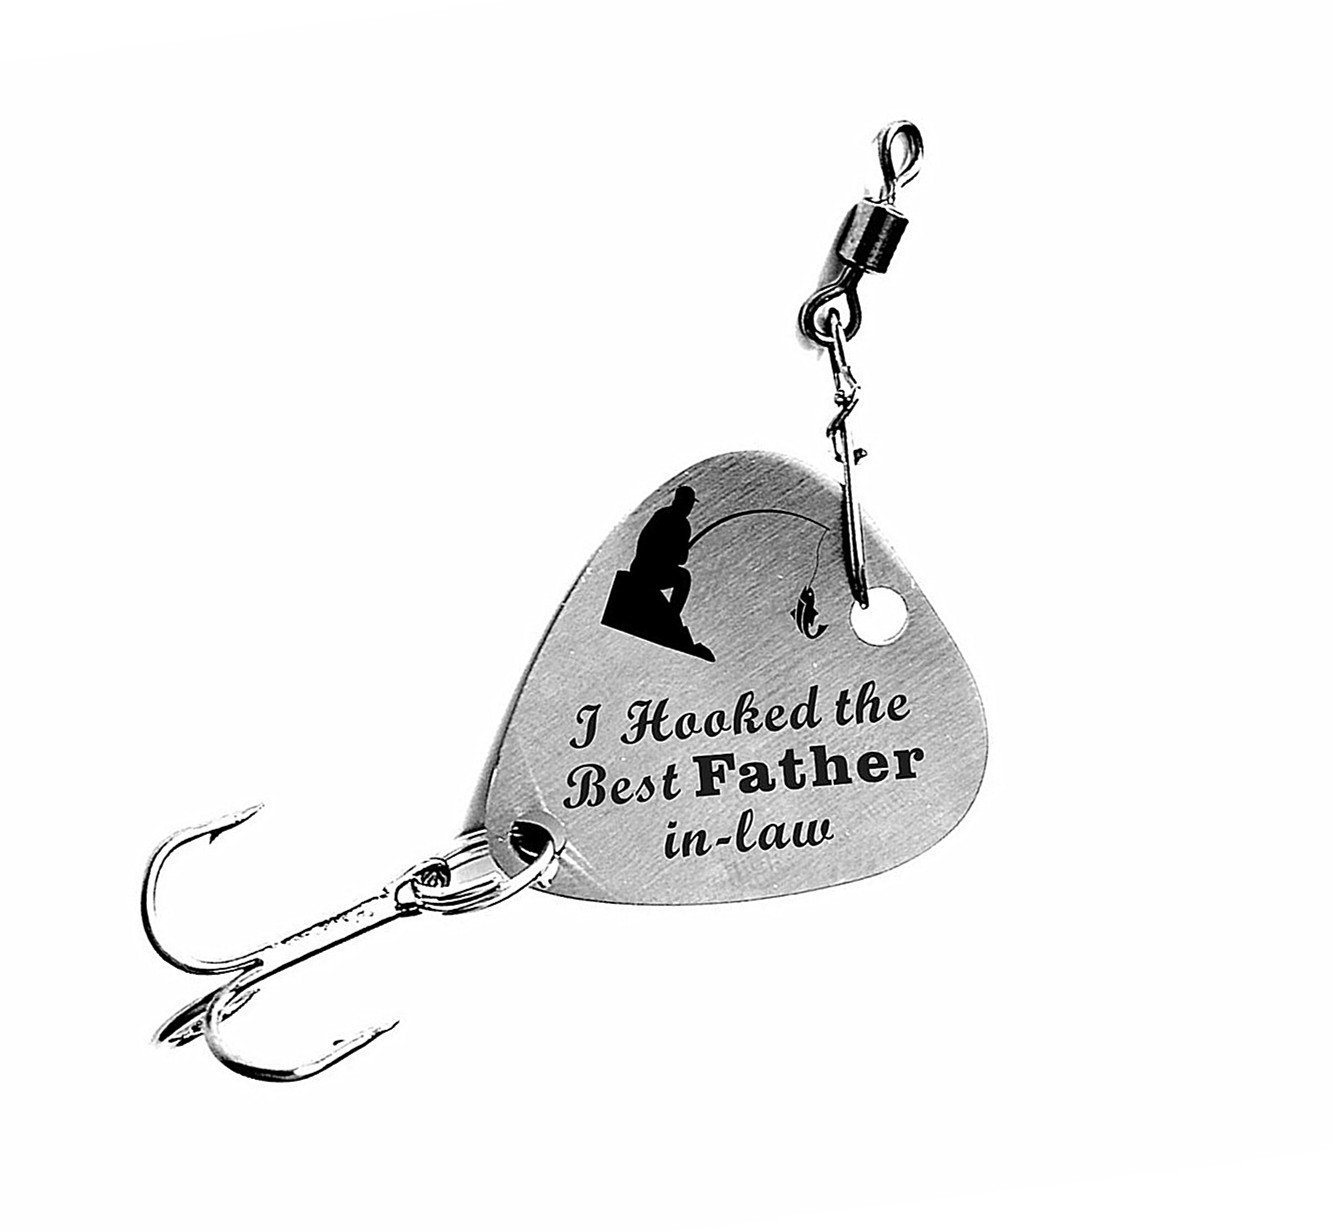 "Father in Law Gift ""I Hooked the Best Father in-law"" Stainless steel Fishing Lure Father's Day Gift"